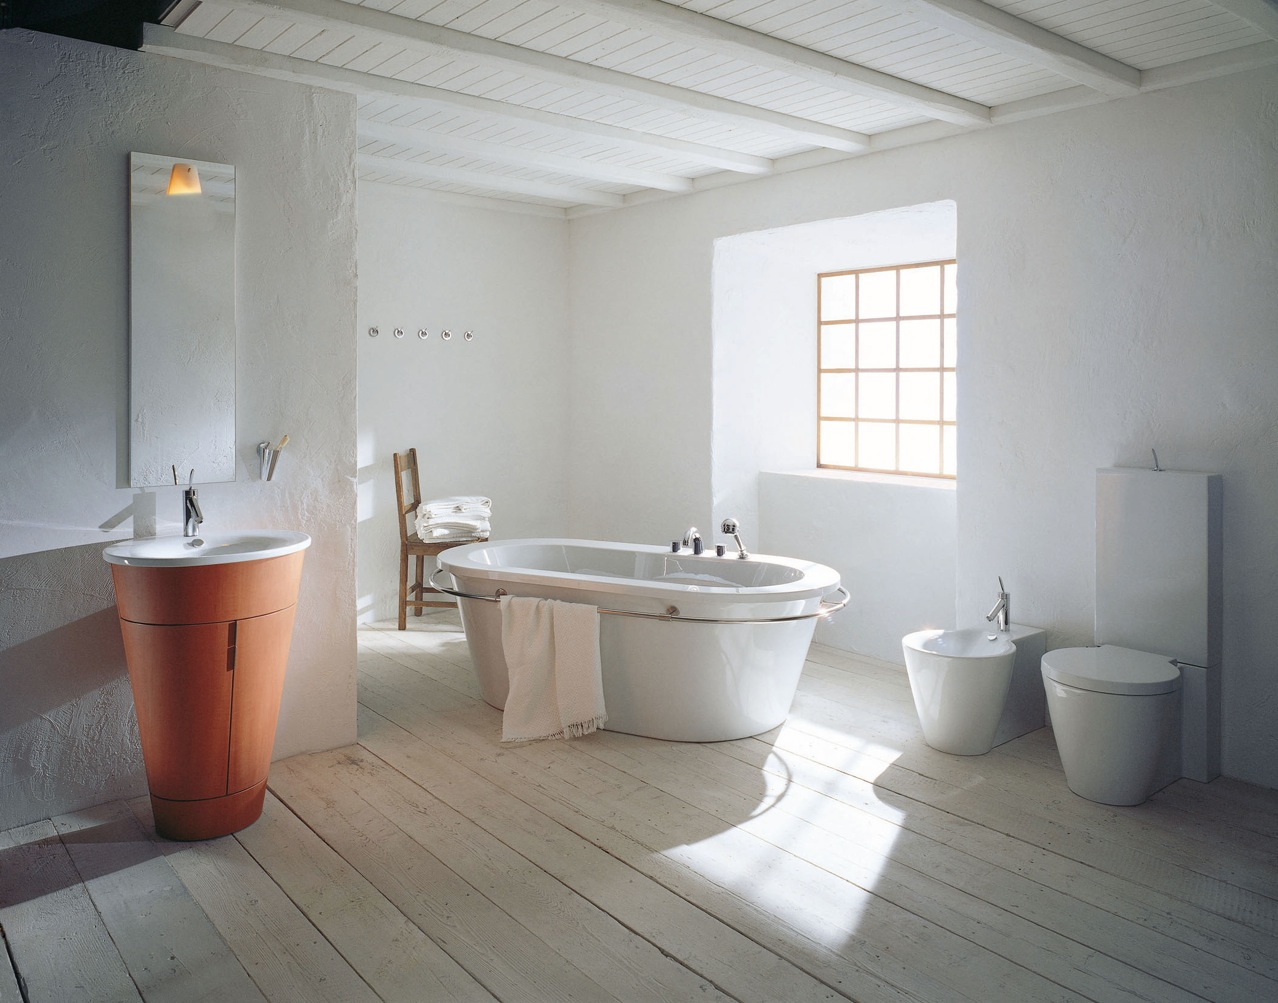 Philipe starck rustic modern bathroom decor - Modern bathroom decorations ...